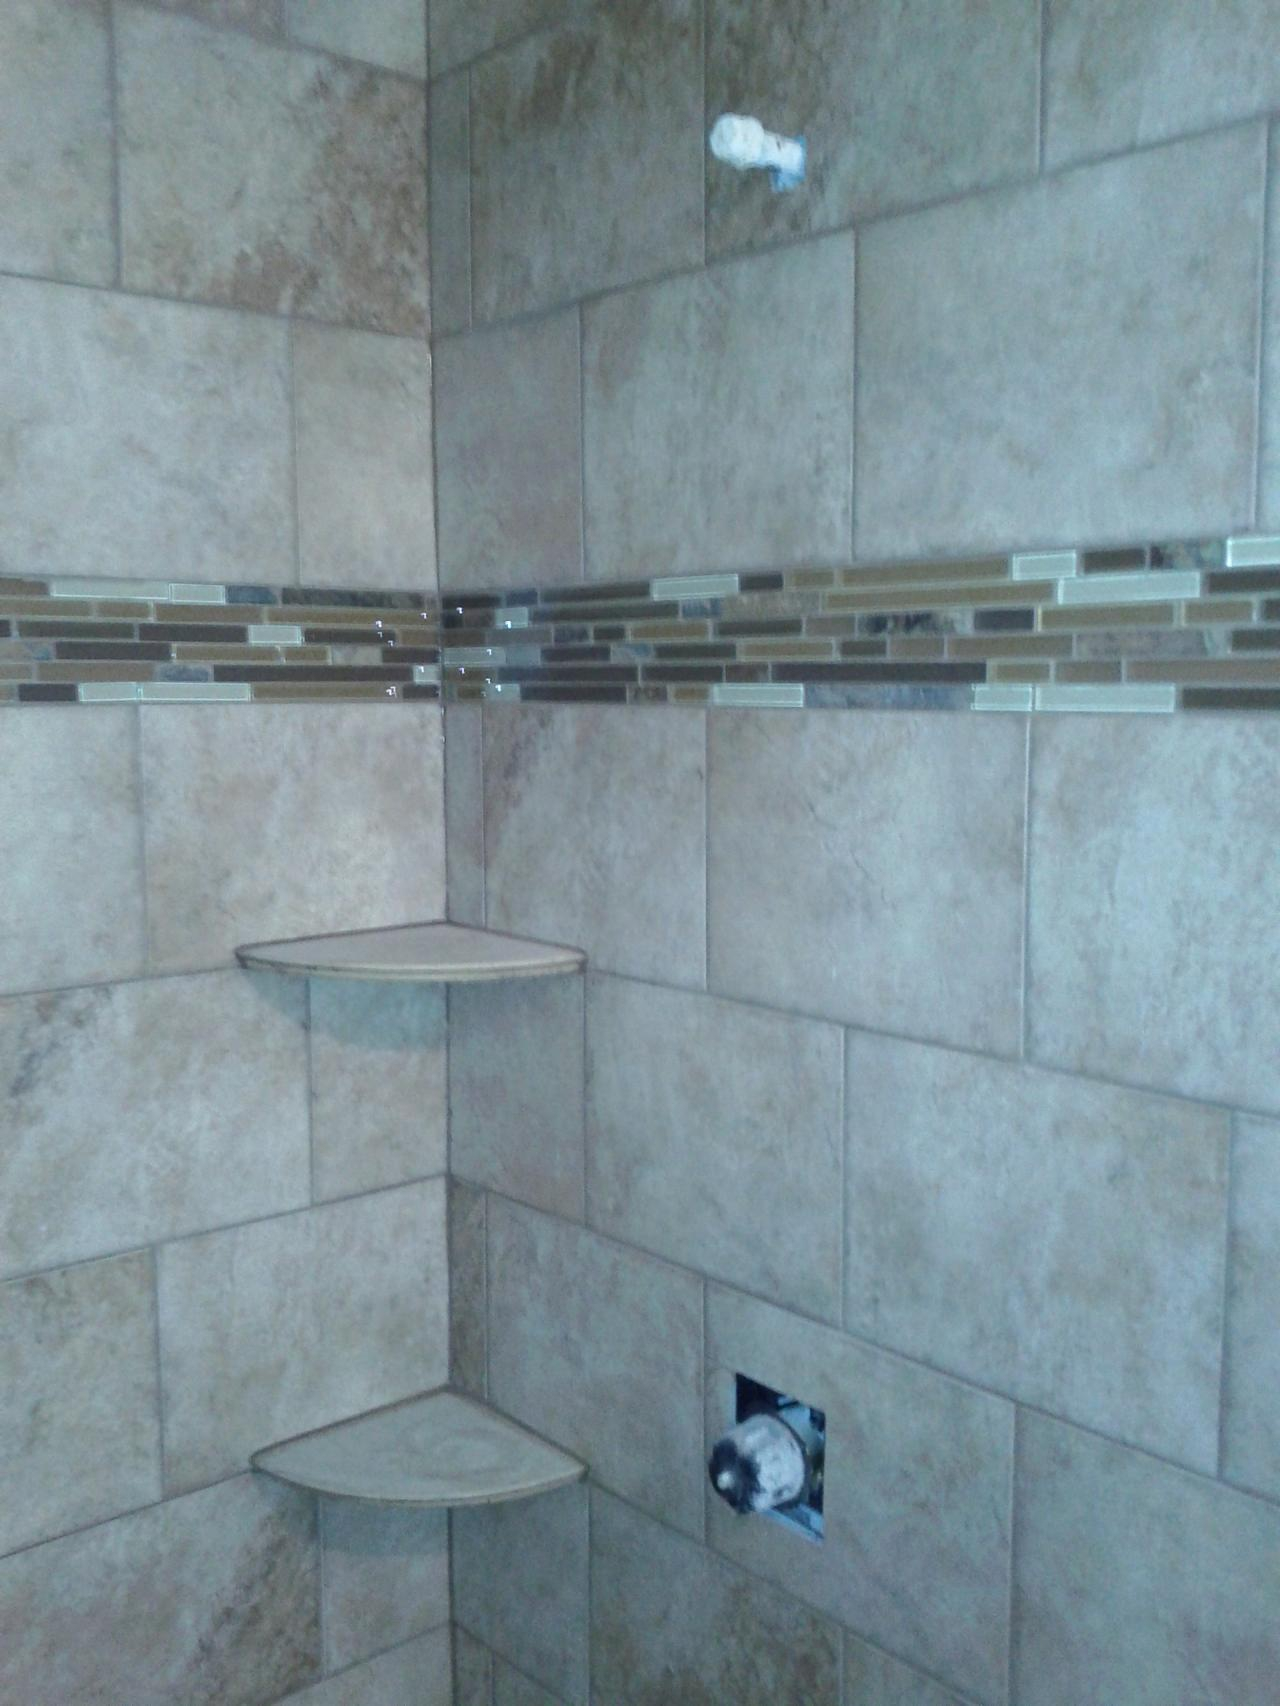 Bathroom Ceramic Tile Images : Handful pictures about laying ceramic tile in bathroom